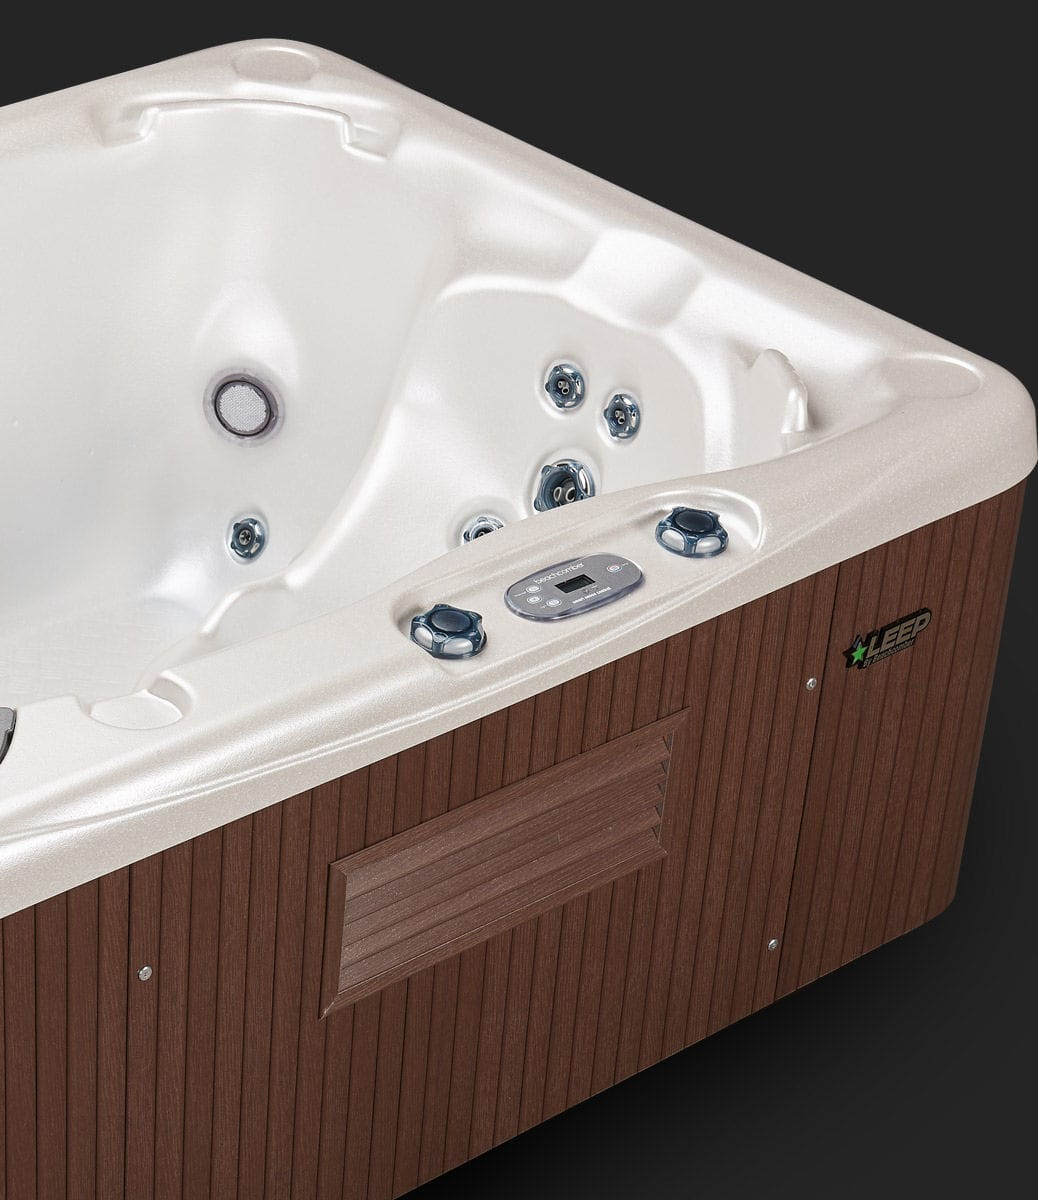 hotspring person plug spa hot tx solana n guy tub play the nashville tubs watch